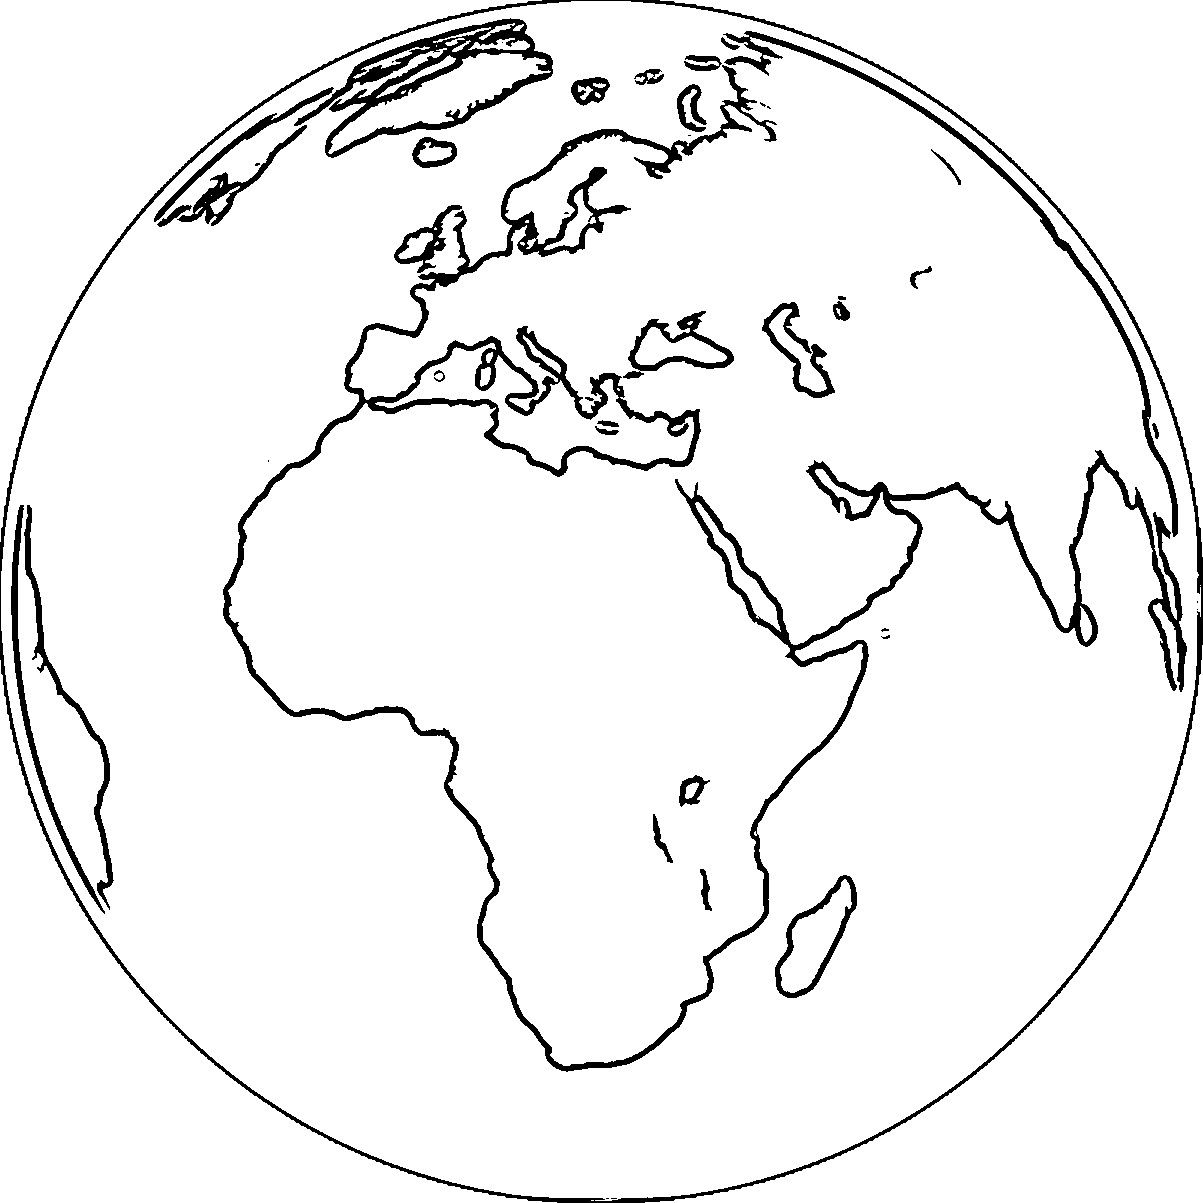 Drobne Ziemskie Strony Kolorowania Szybko Sfalszowane Zdjecia Do Druku Informative Globe St Earth Coloring Pages Planet Coloring Pages Earth Day Coloring Pages